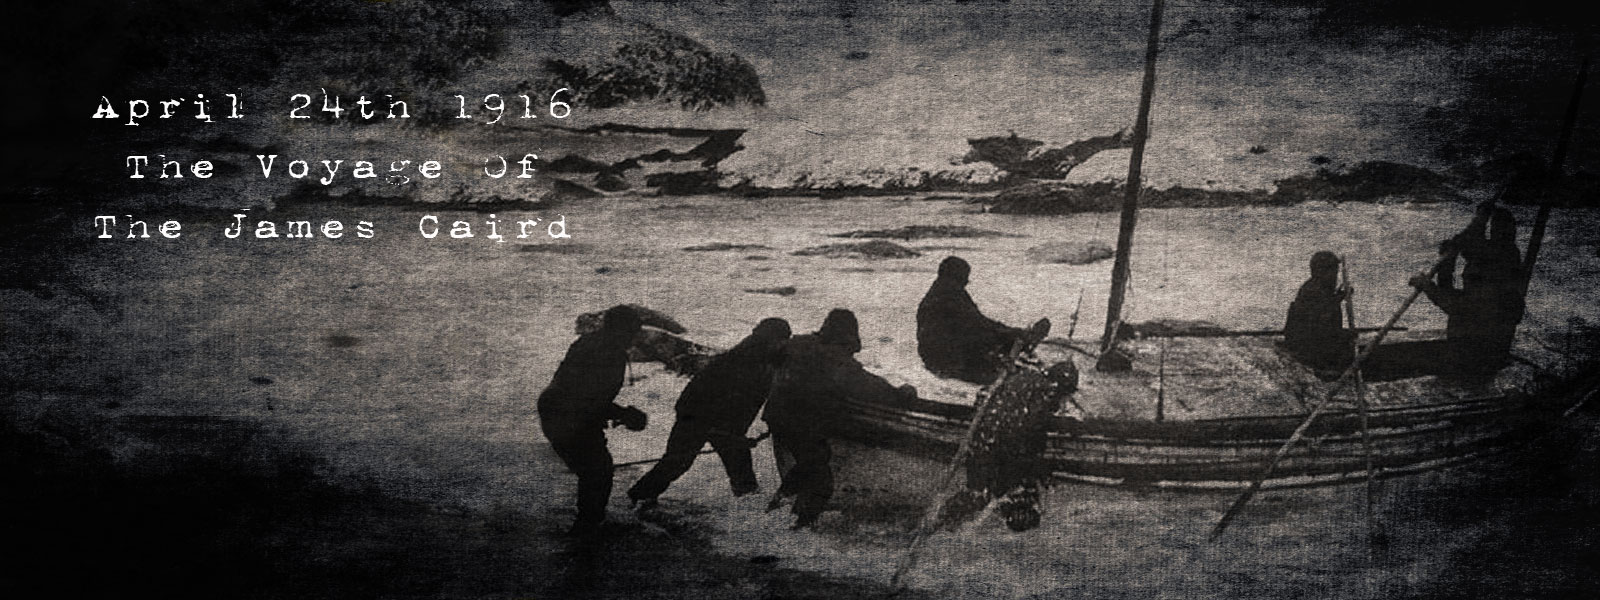 On This Day 1916 – Voyage of the James Caird